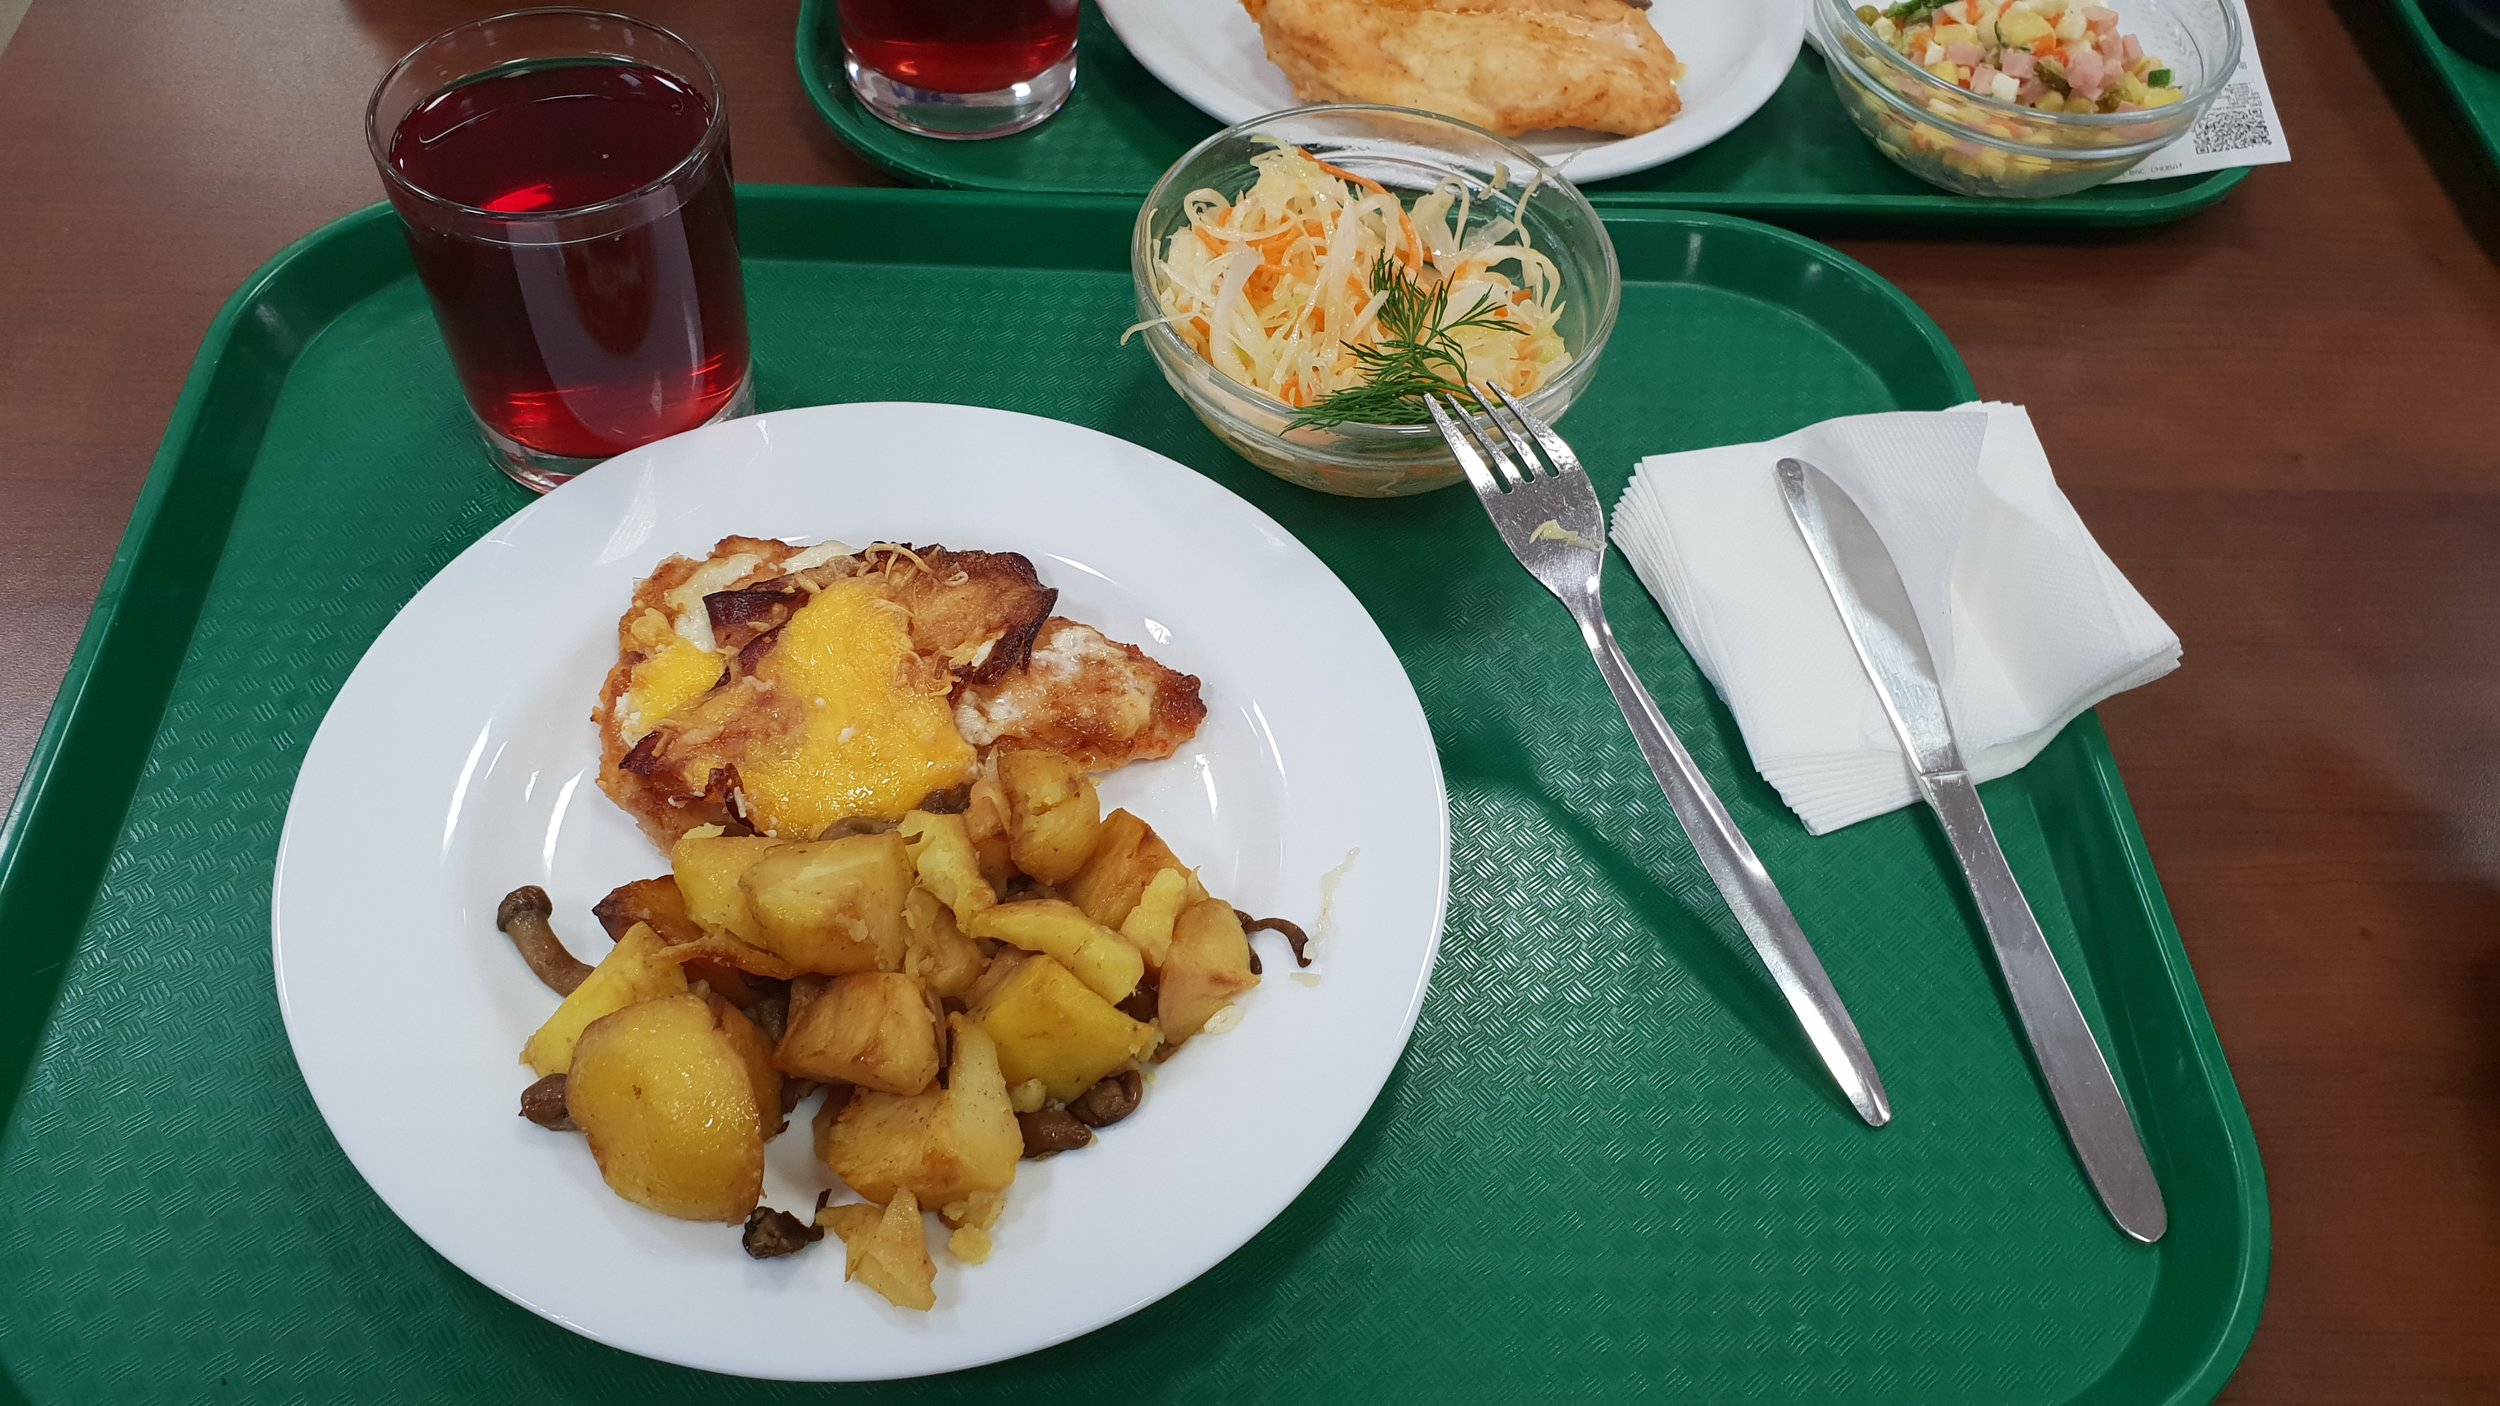 Lunch at MGIMO